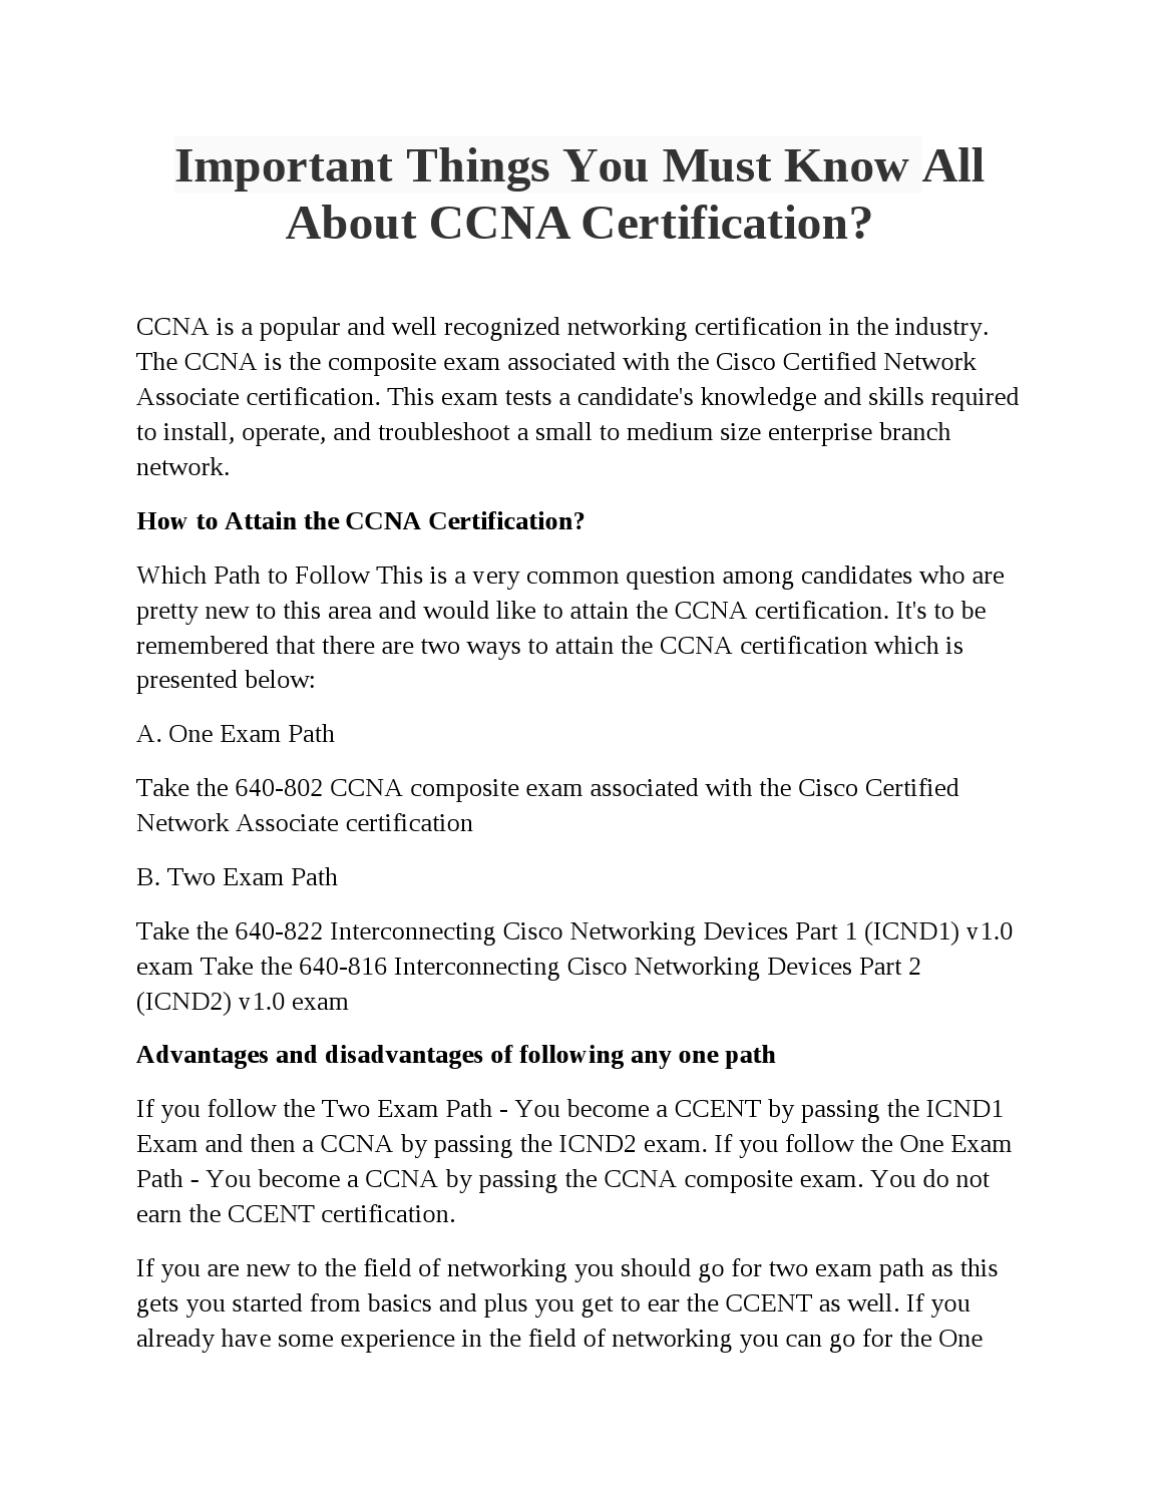 Important Things You Must Know All About Ccna Certification By